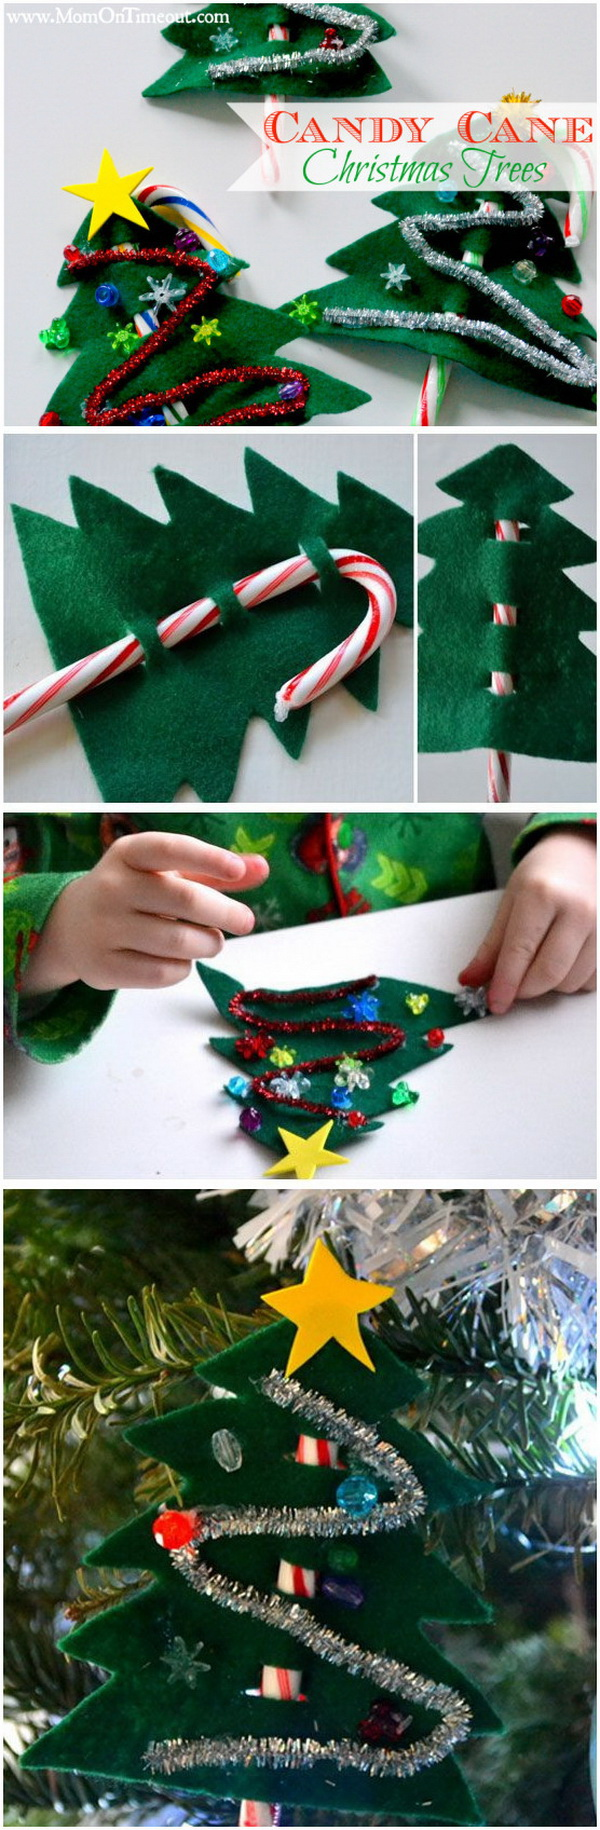 DIY Felt Candy Cane Christmas Trees. This DIY felt candy cane Christmas tree is a great craft idea for little ones, the perfect Christmas party favor, ornament, or it makes a pretty gift topper too!